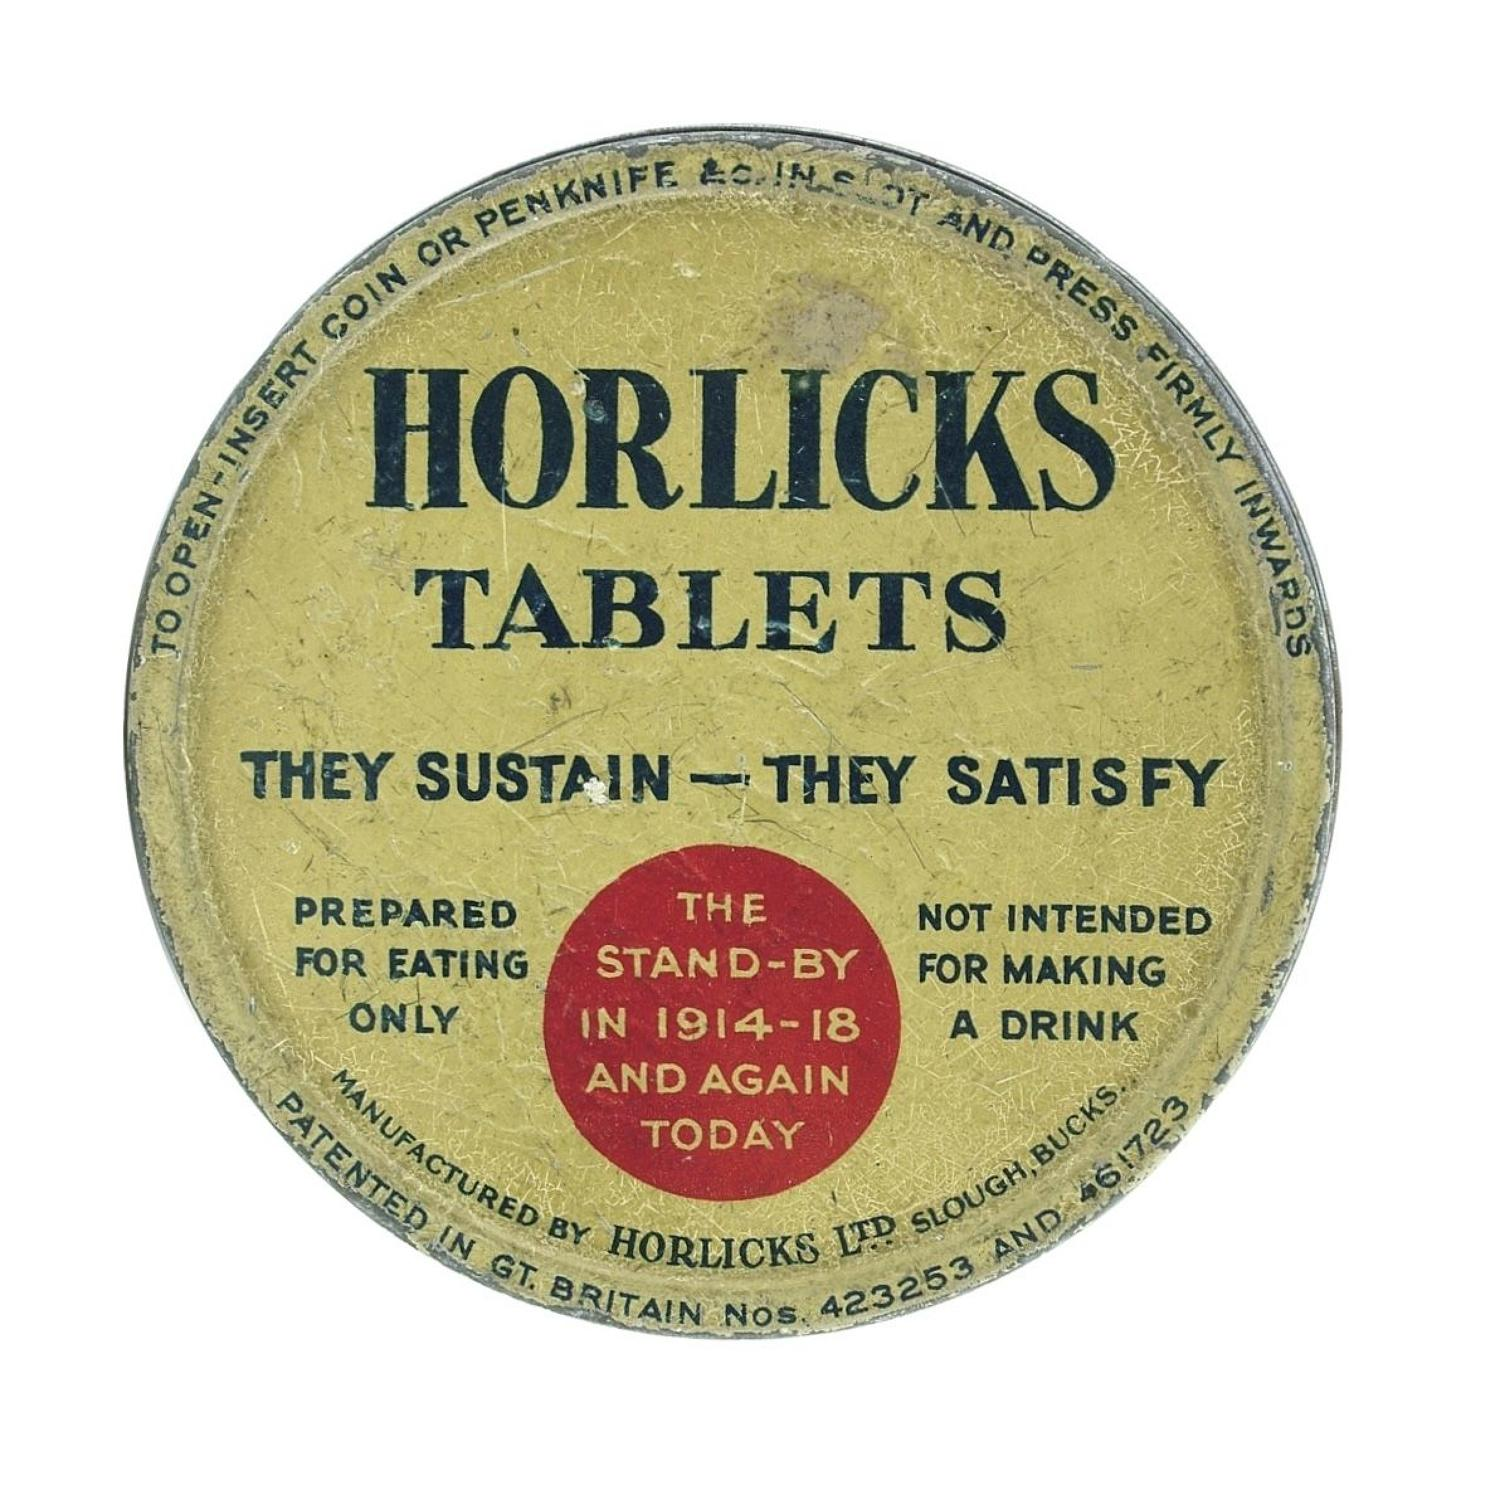 Horlicks Tablets tin